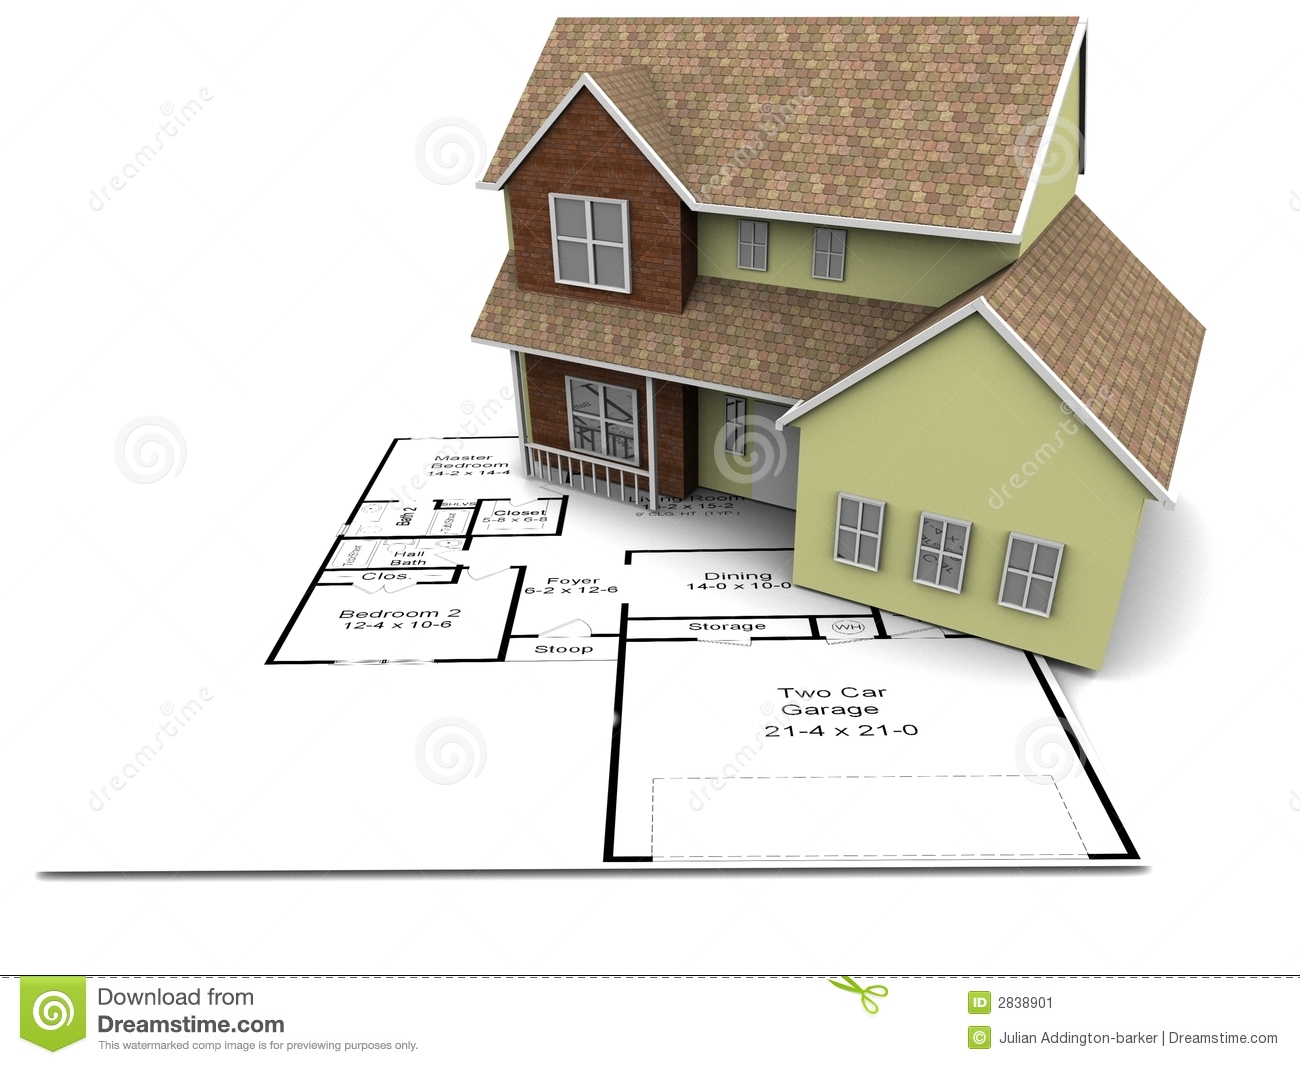 New house plans stock illustration illustration of house for Stock home plans